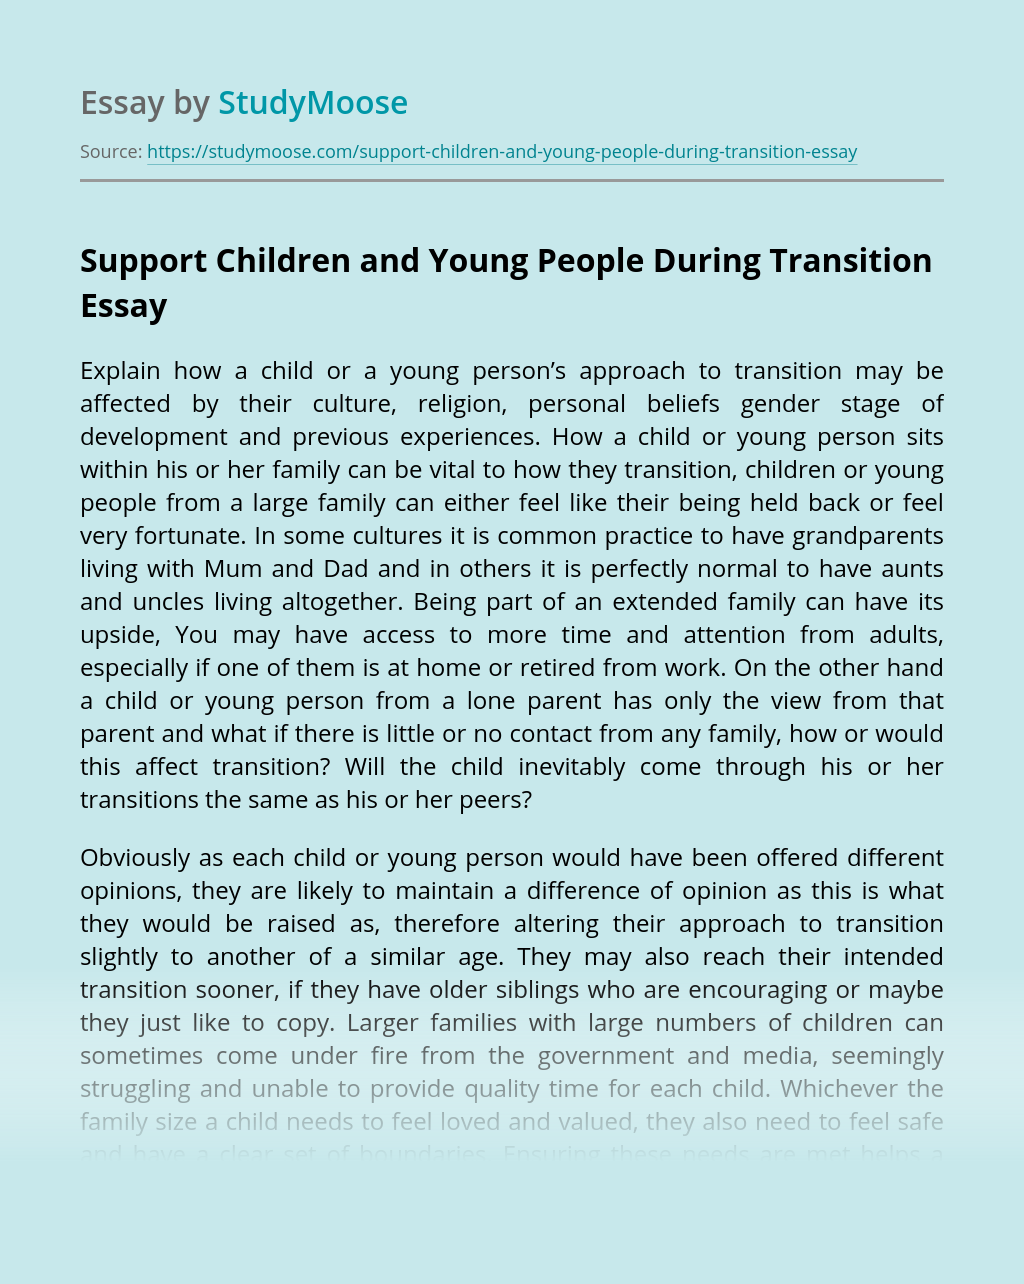 Support Children and Young People During Transition